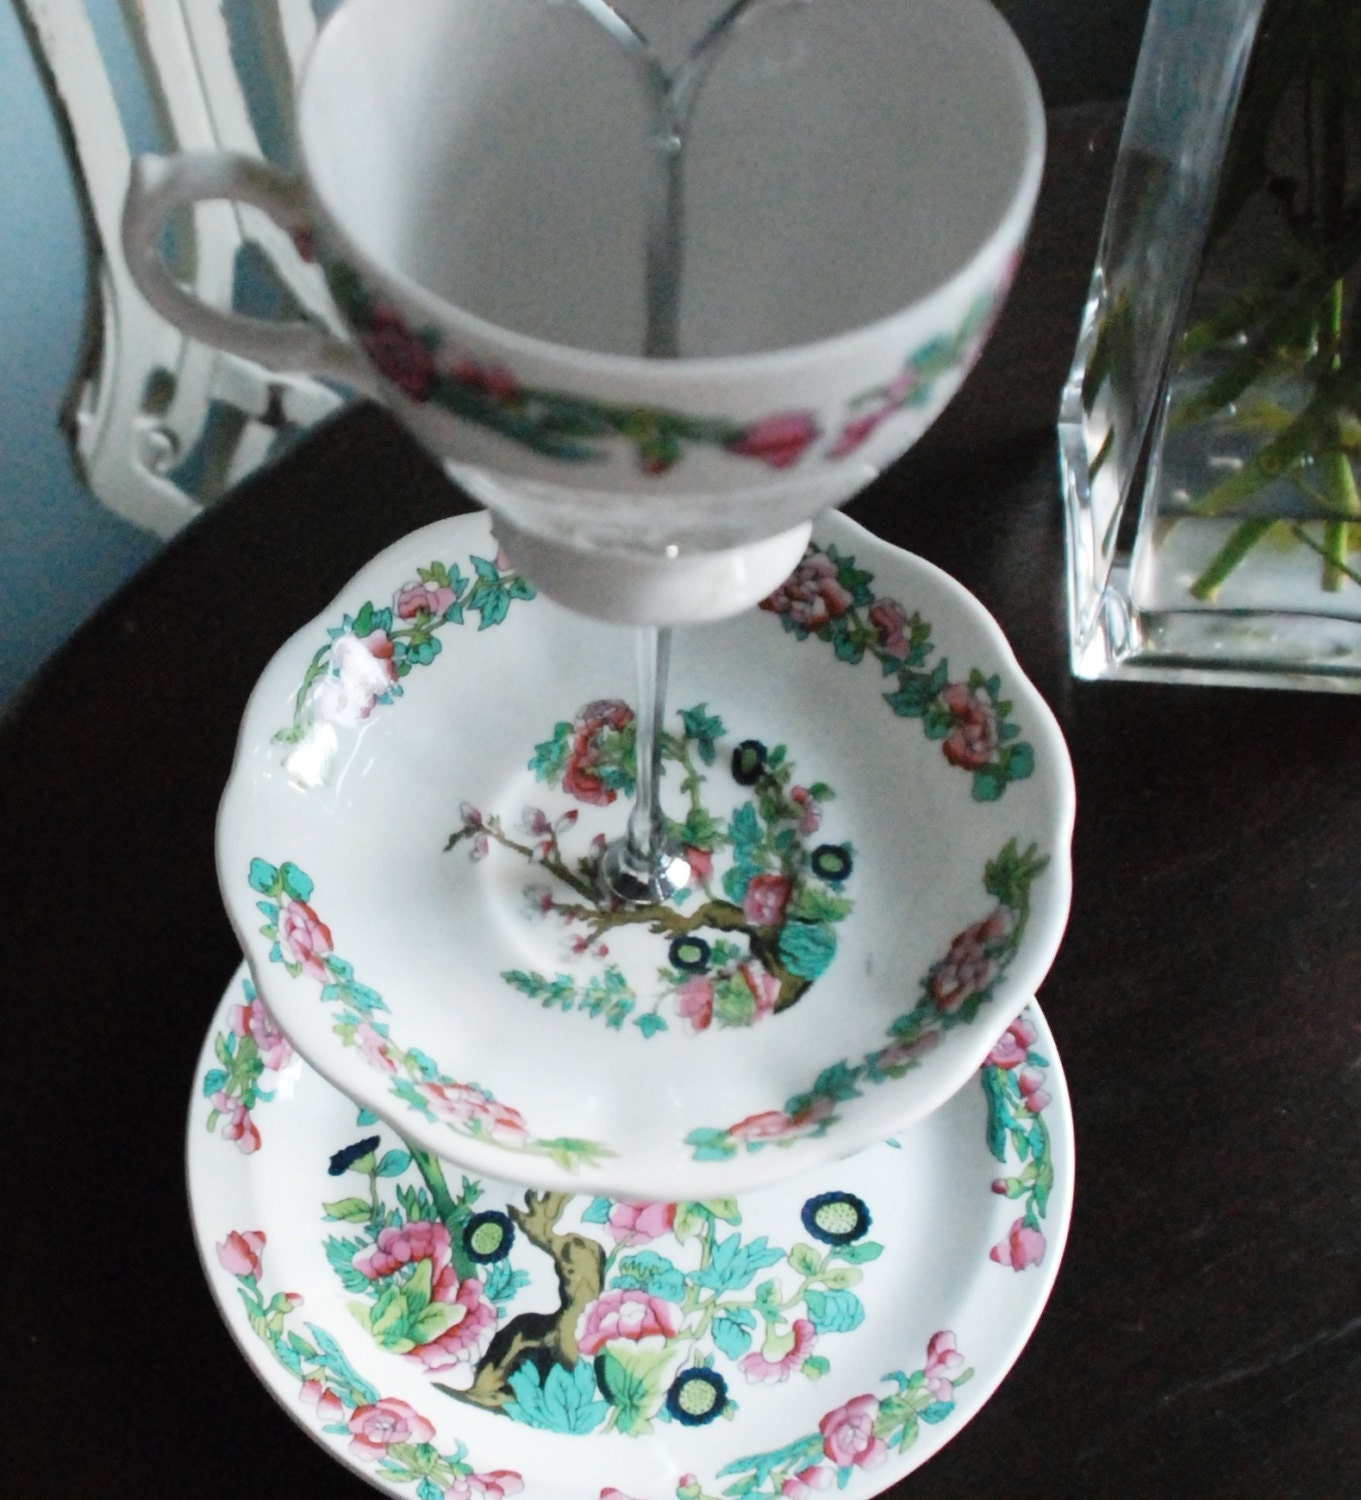 Vintage cake stand Indian tree design by MeowInteriors on Etsy